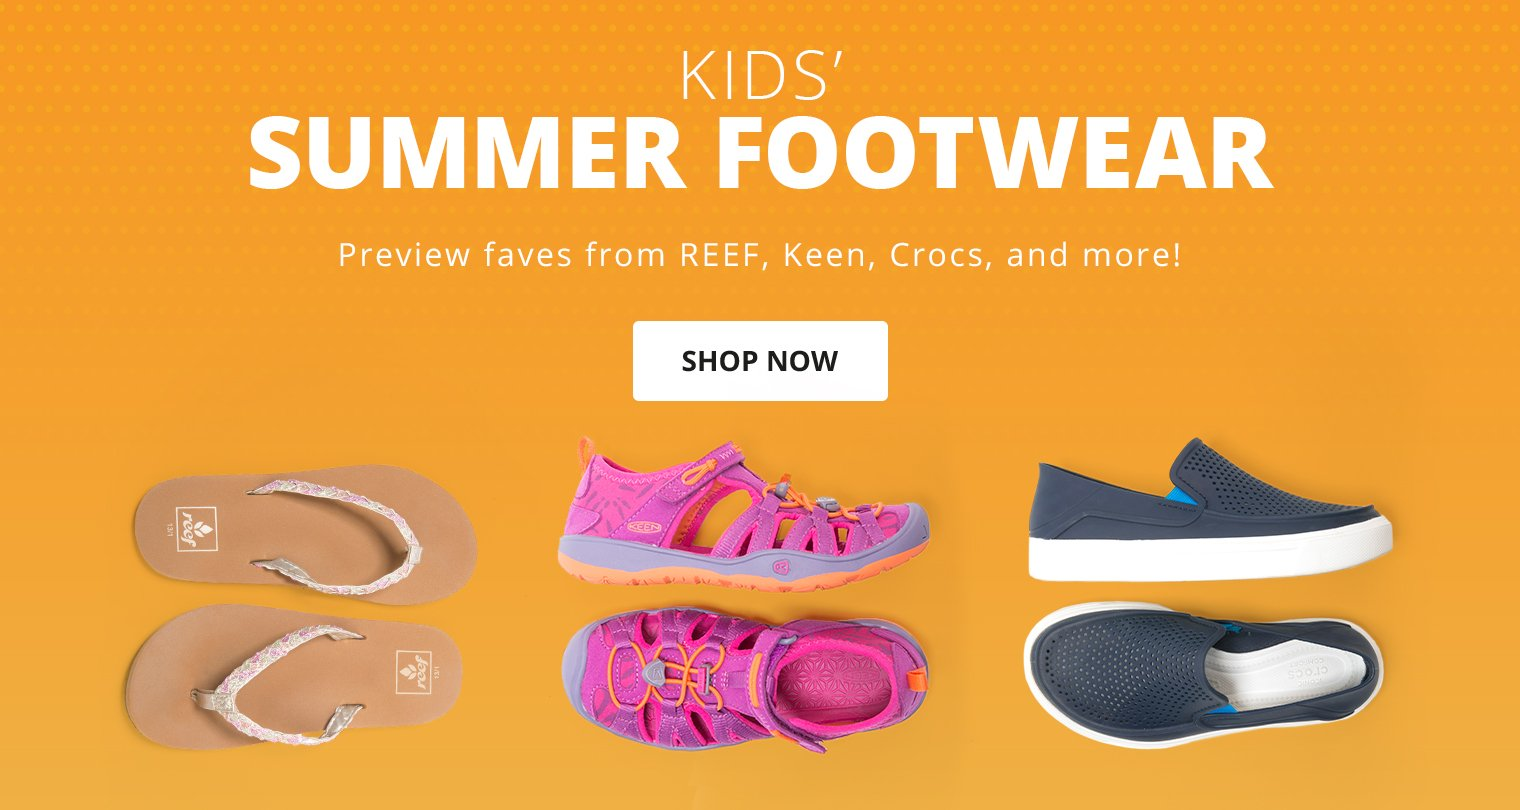 Kids Summer Footwear. Preview faves from Reef, Keen, Crocs and more!